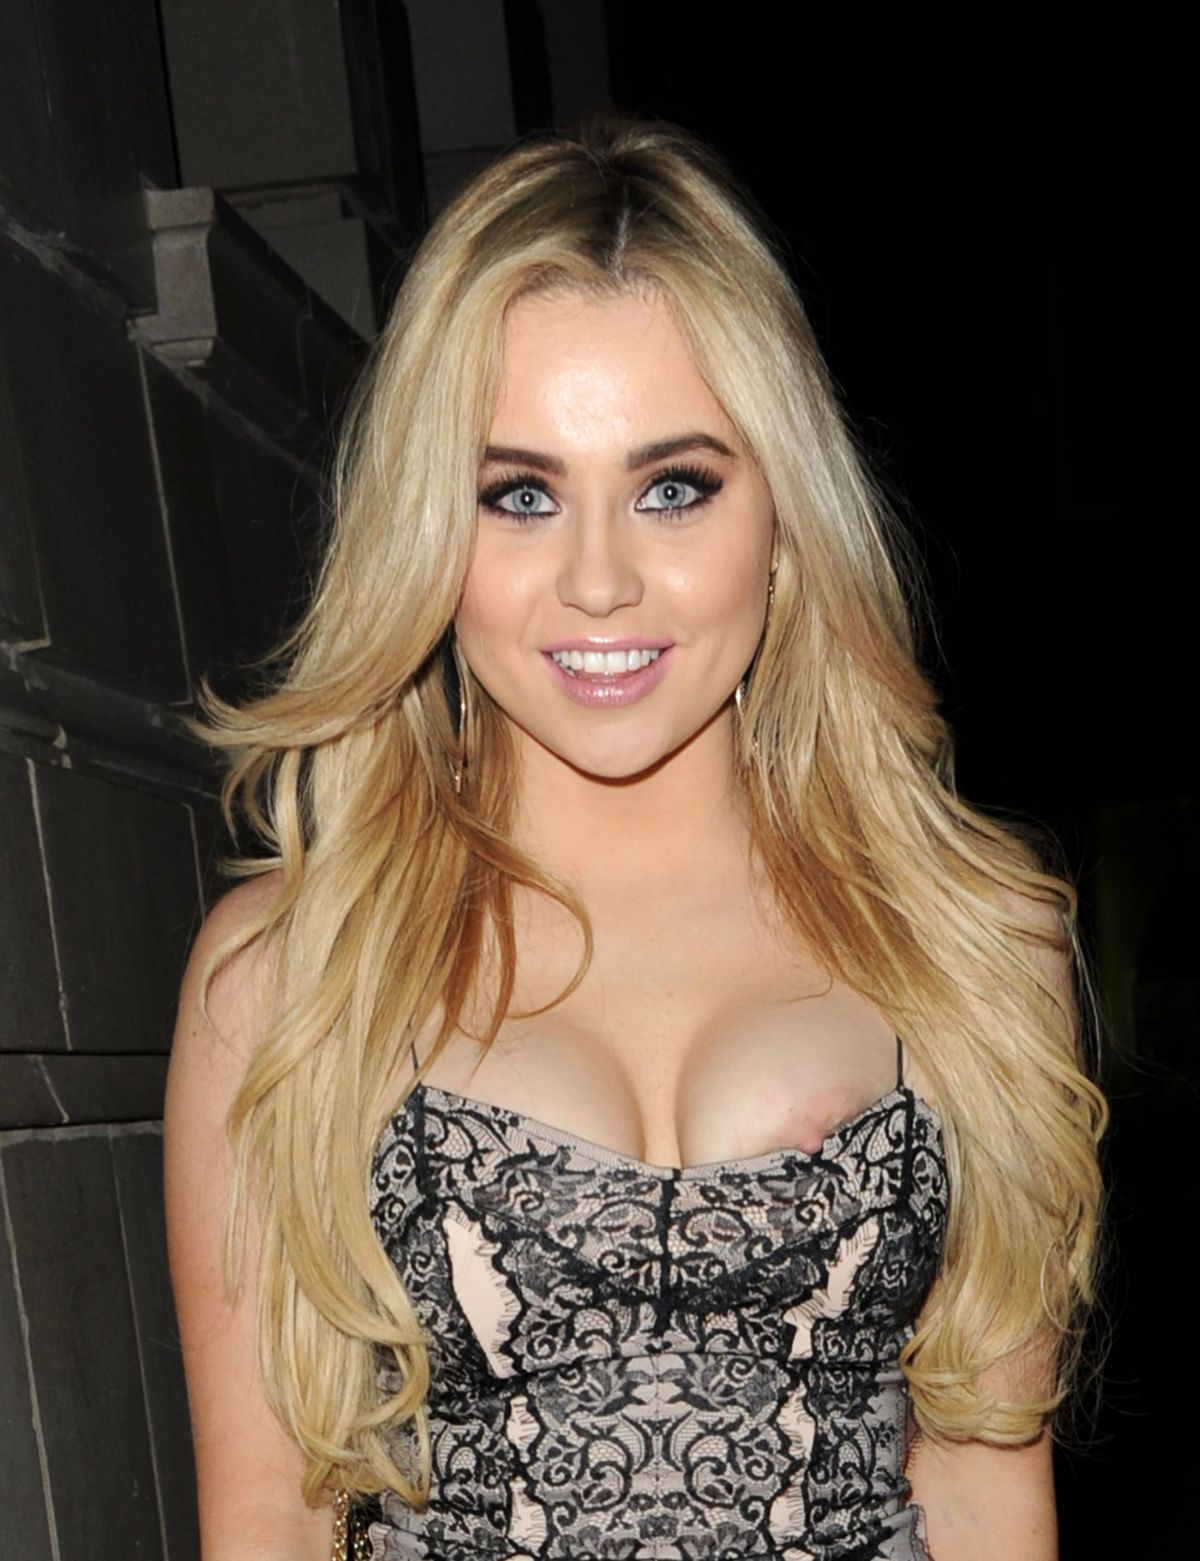 DJ Melissa Reeves Nude Photos 44